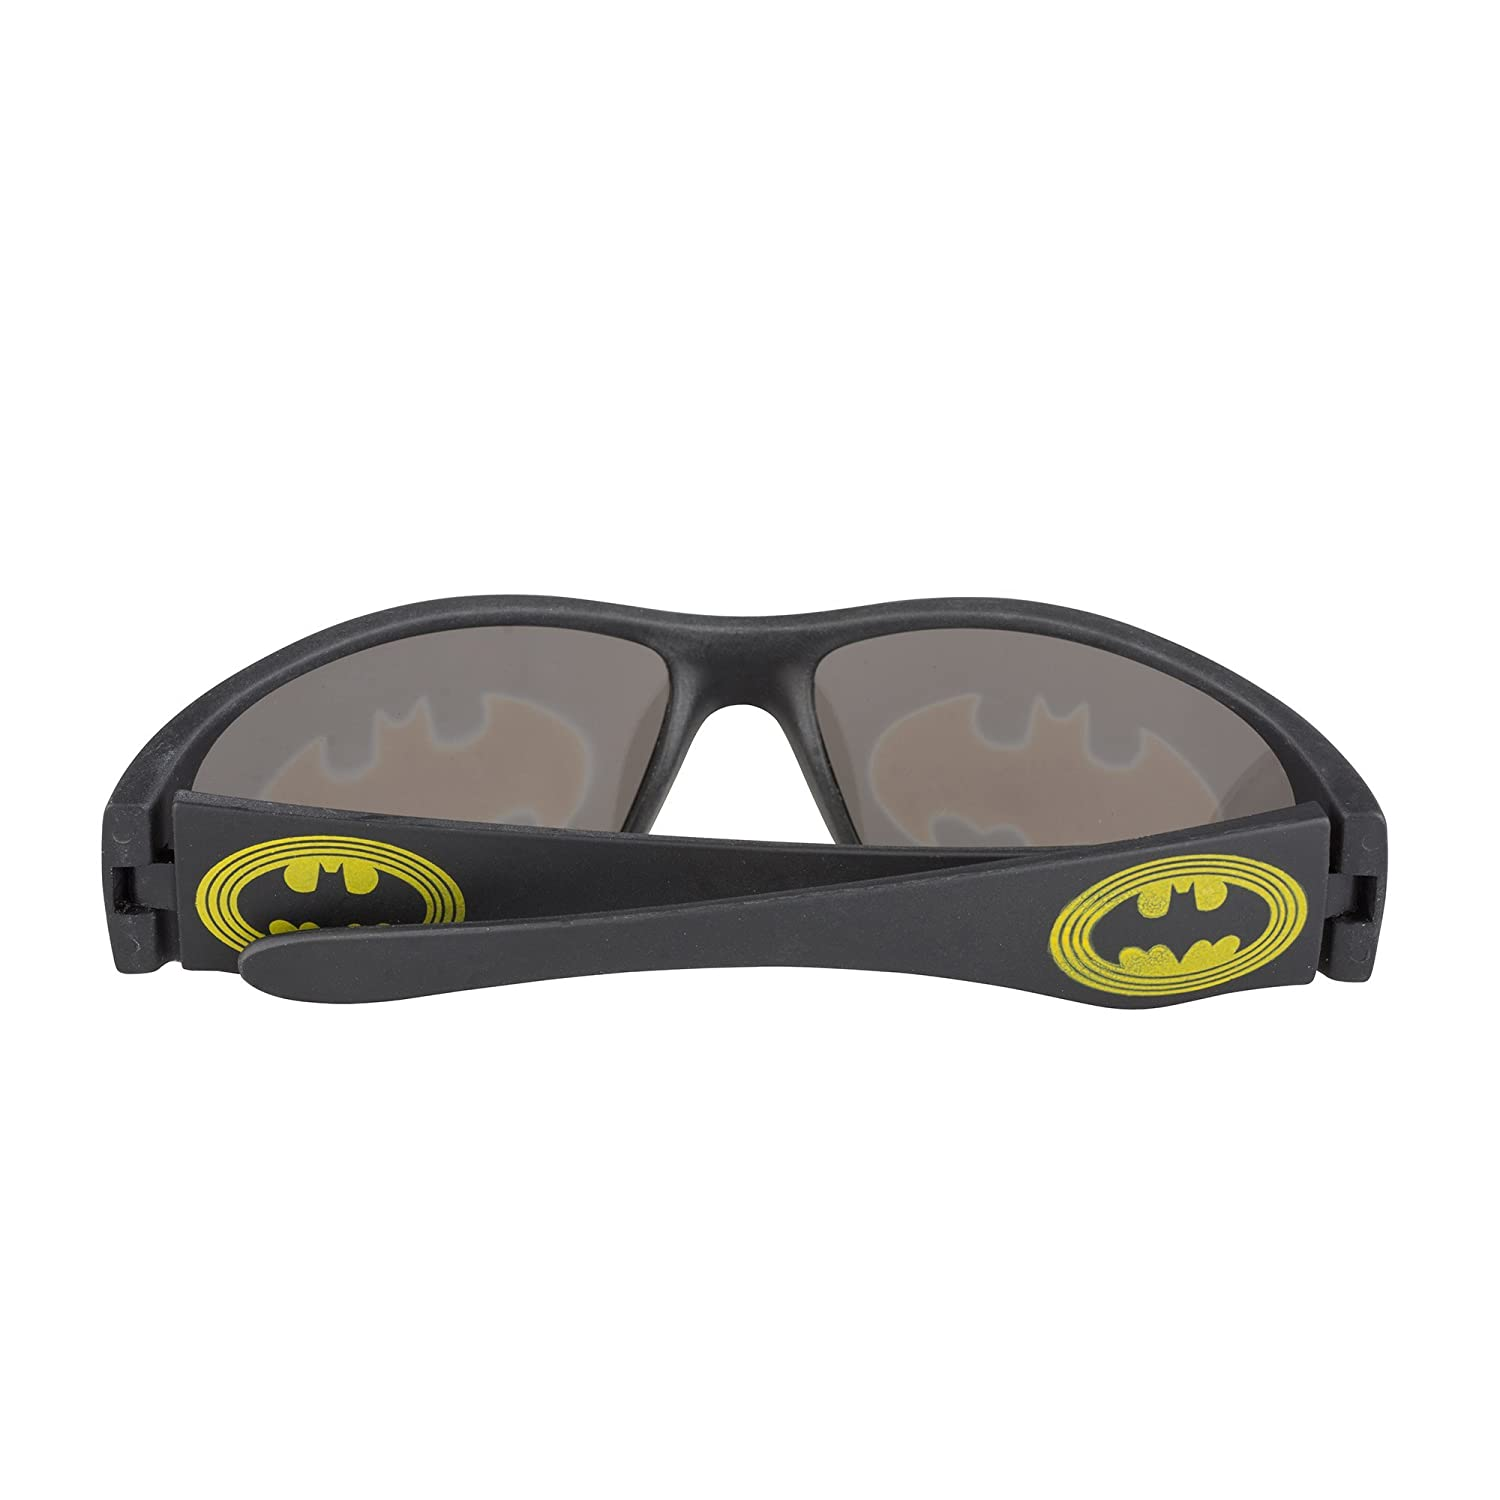 Pan Oceanic LTD Black Plastic Batman Sunglasses for Boys Non-polarized Spiderman Avengers Star Wars BM064-BLKWAY-OS